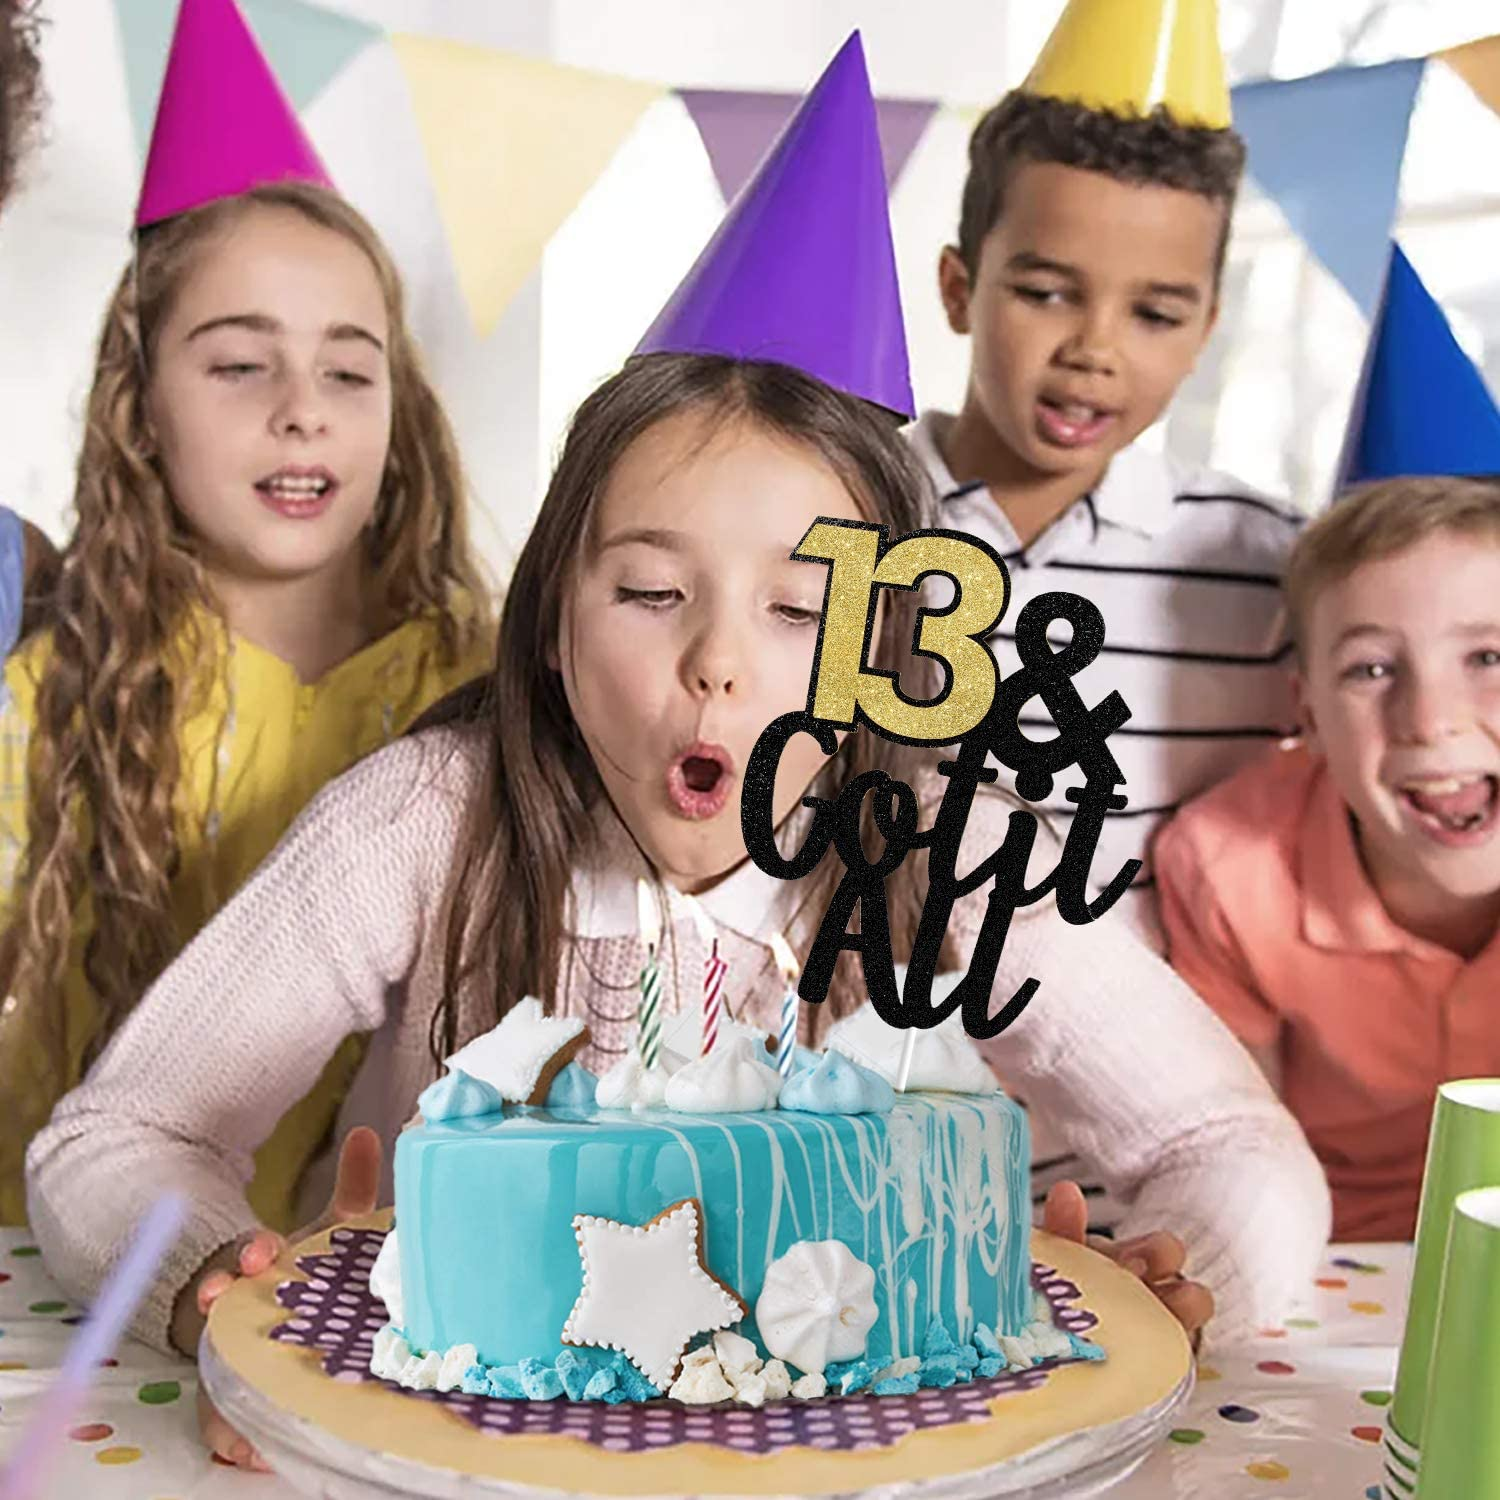 13 /& Got It All Cake Topper Official Teenager 13 Cake Decor Happy 13th Birthday Party Decorations